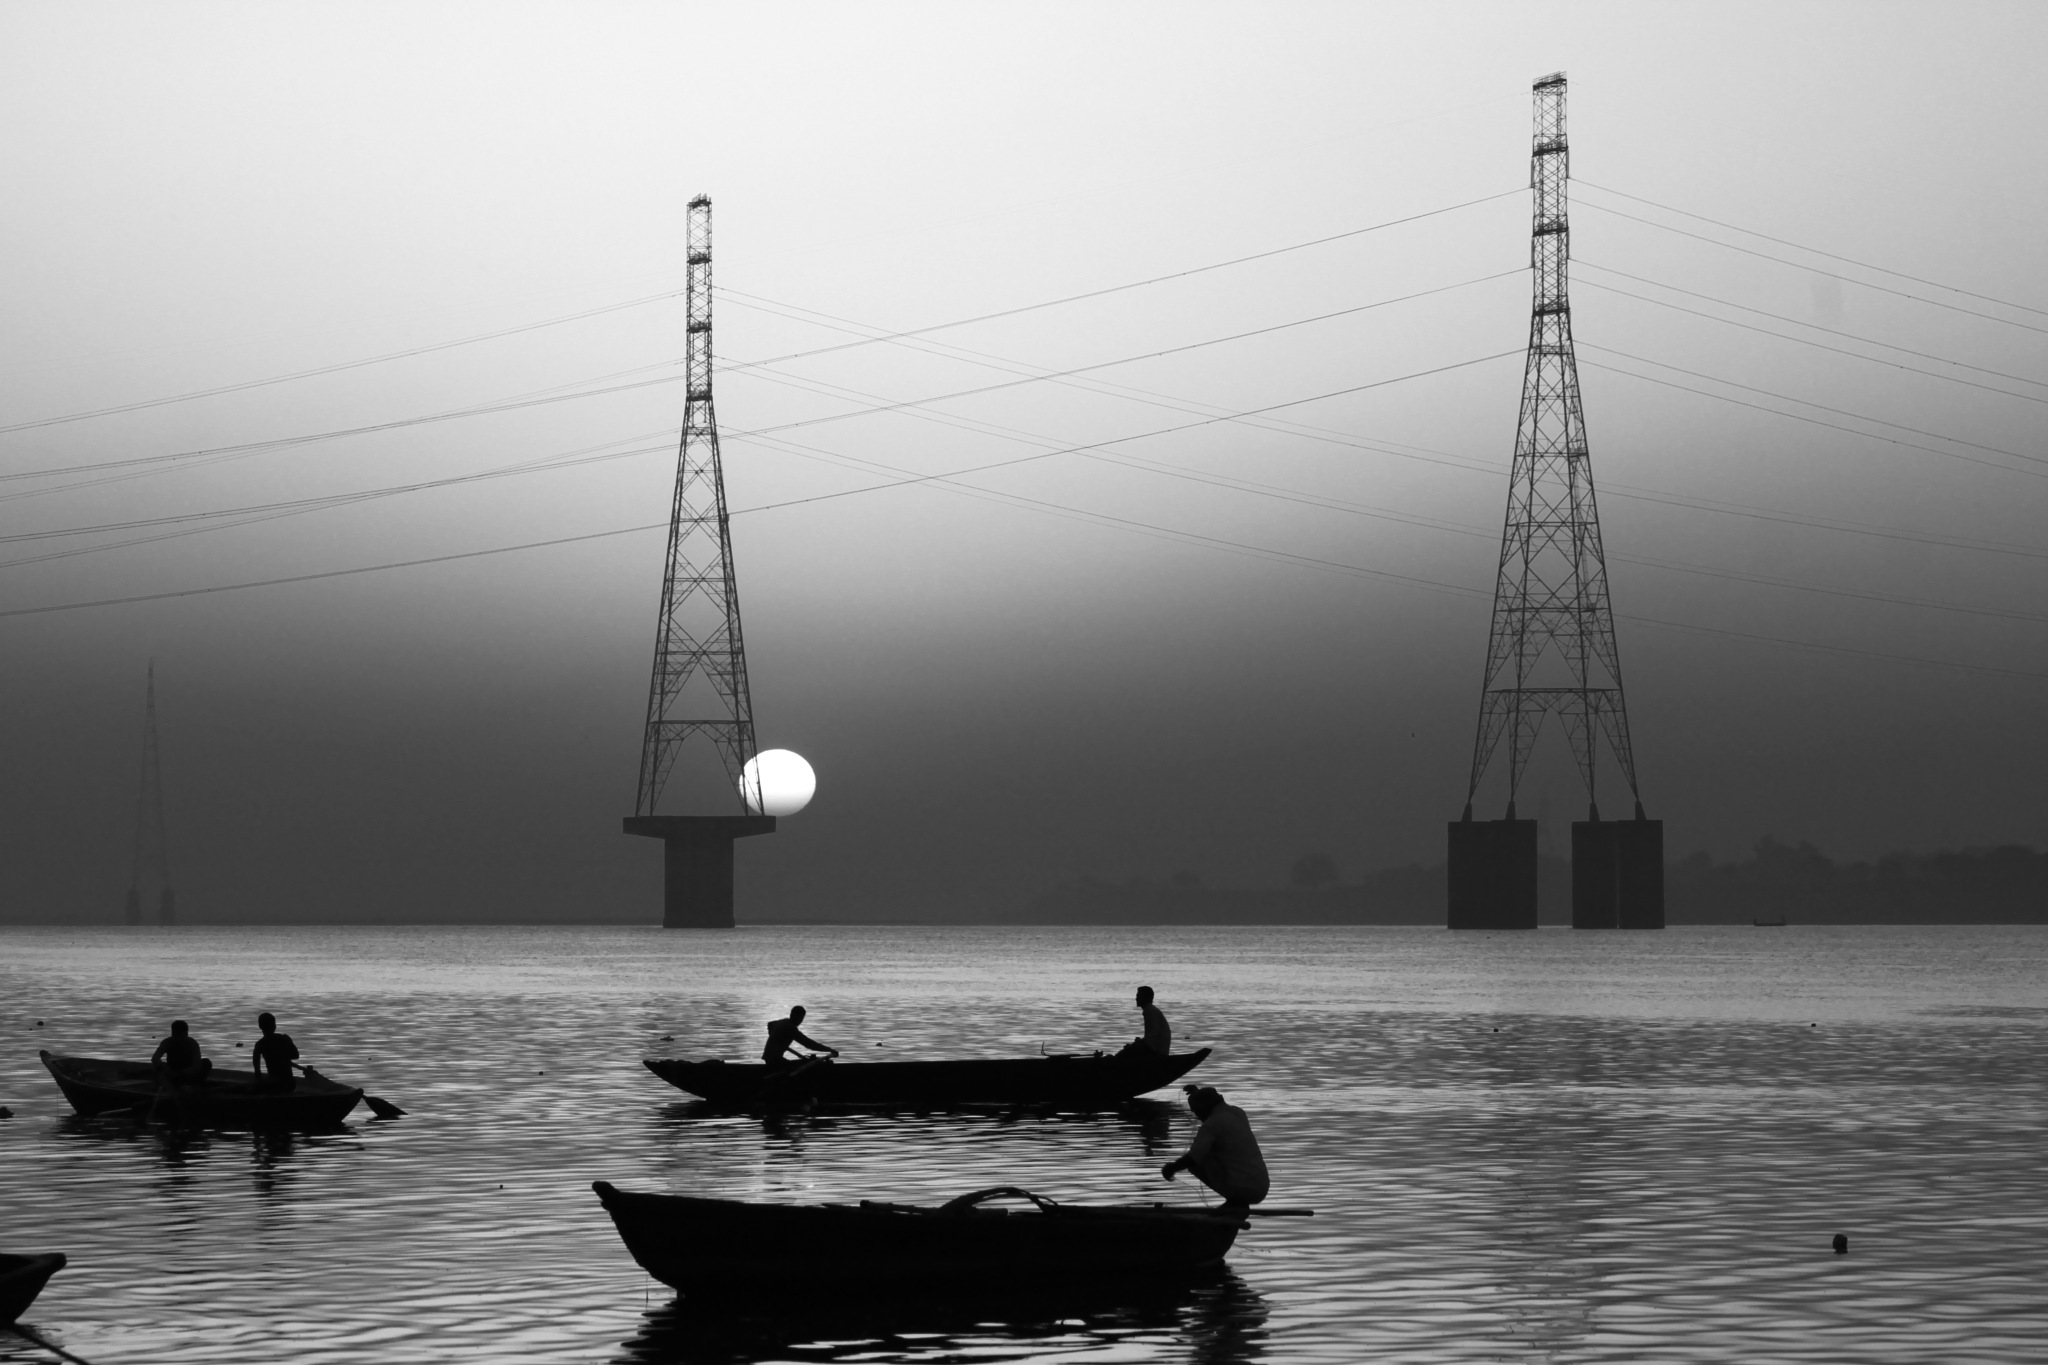 Colorless Morning by Sumit Gupta